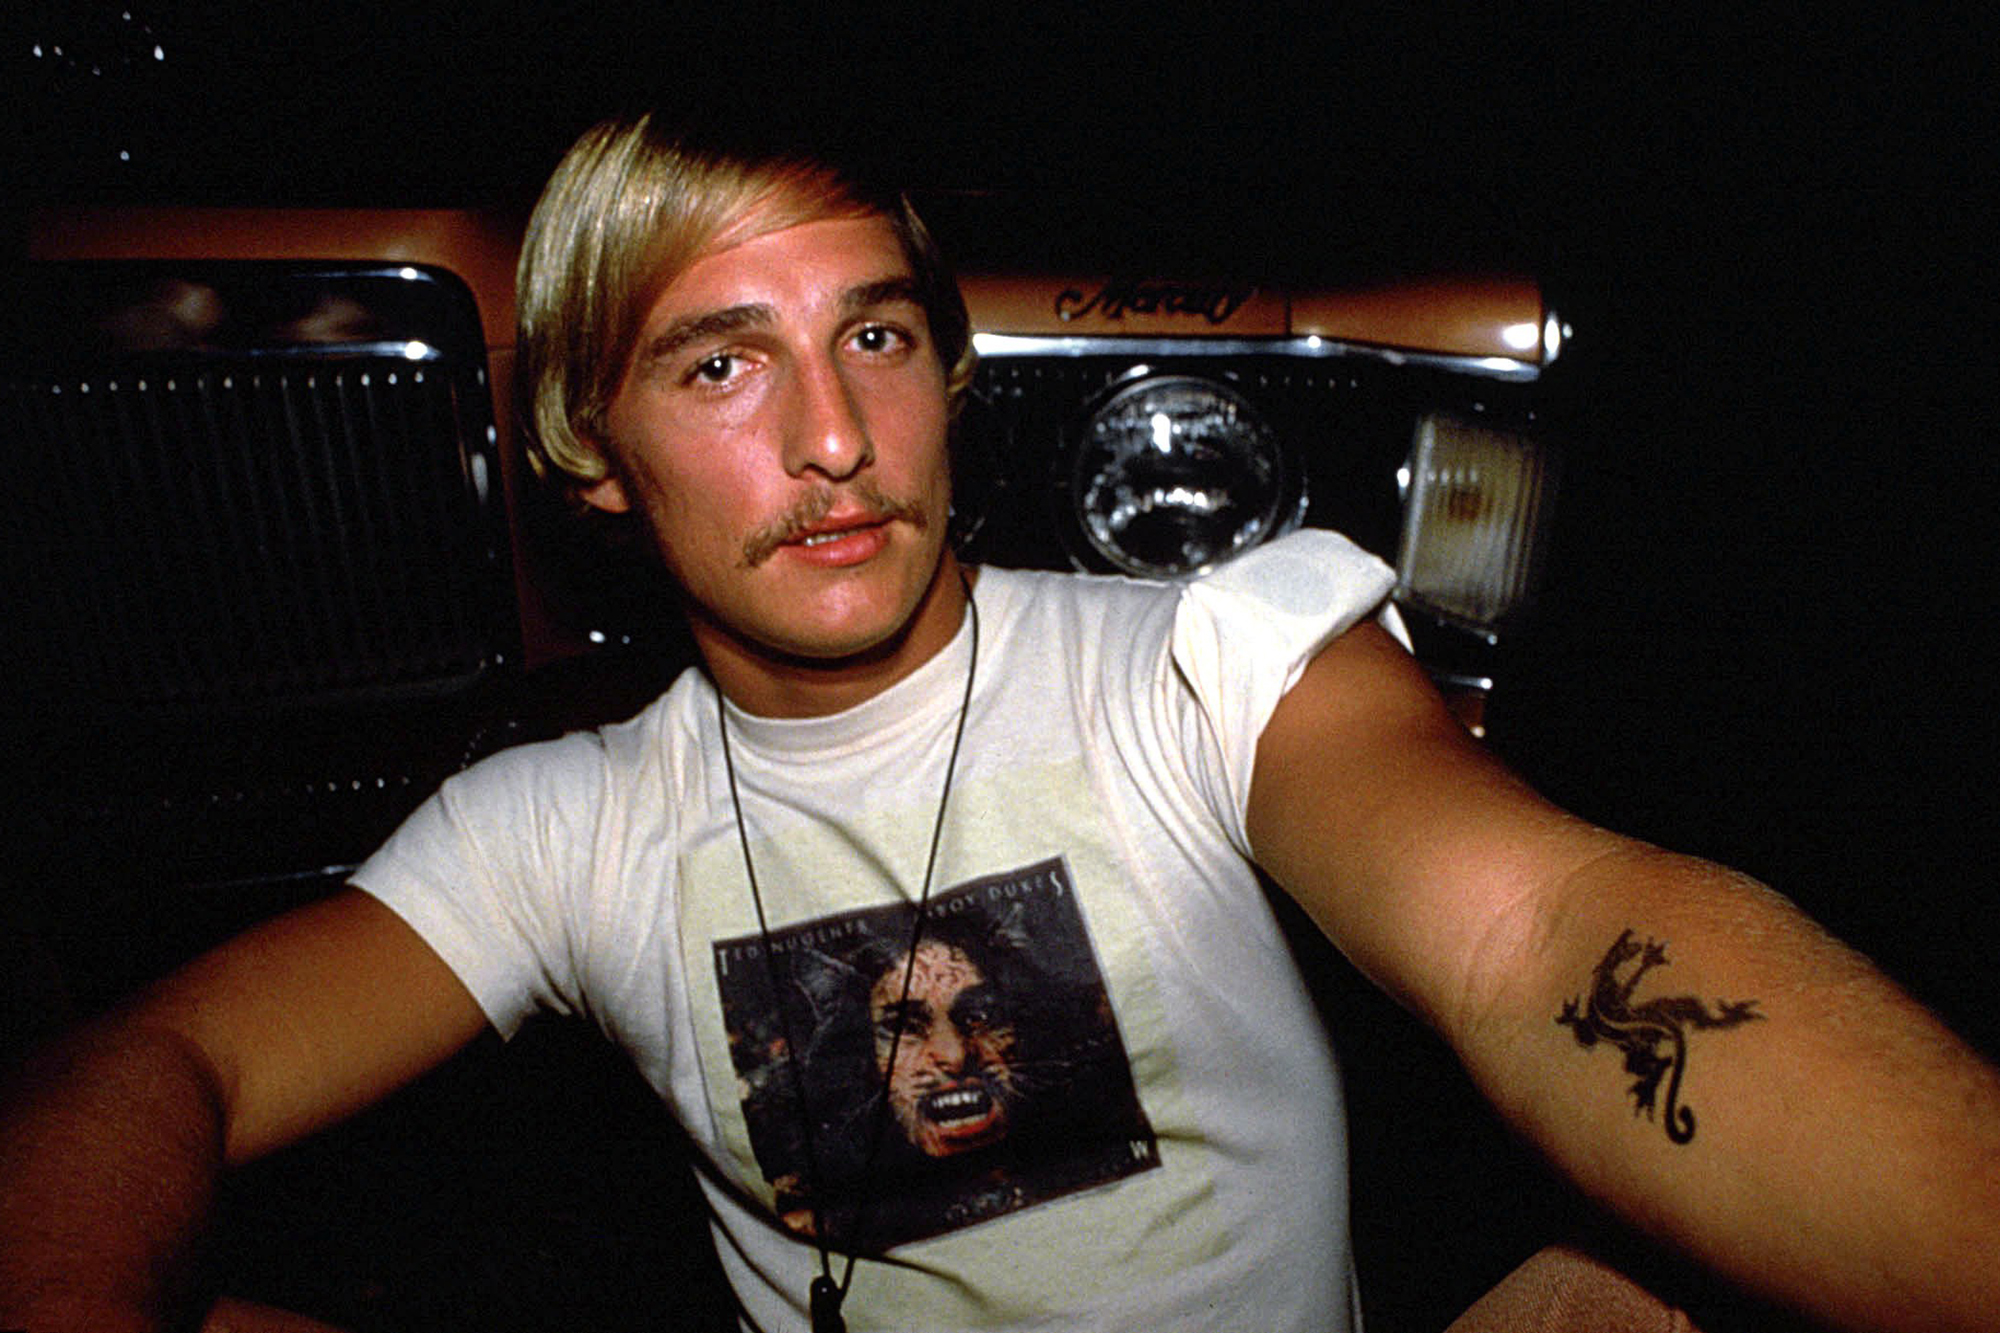 How 'Dazed and Confused' launched Matthew McConaughey's career